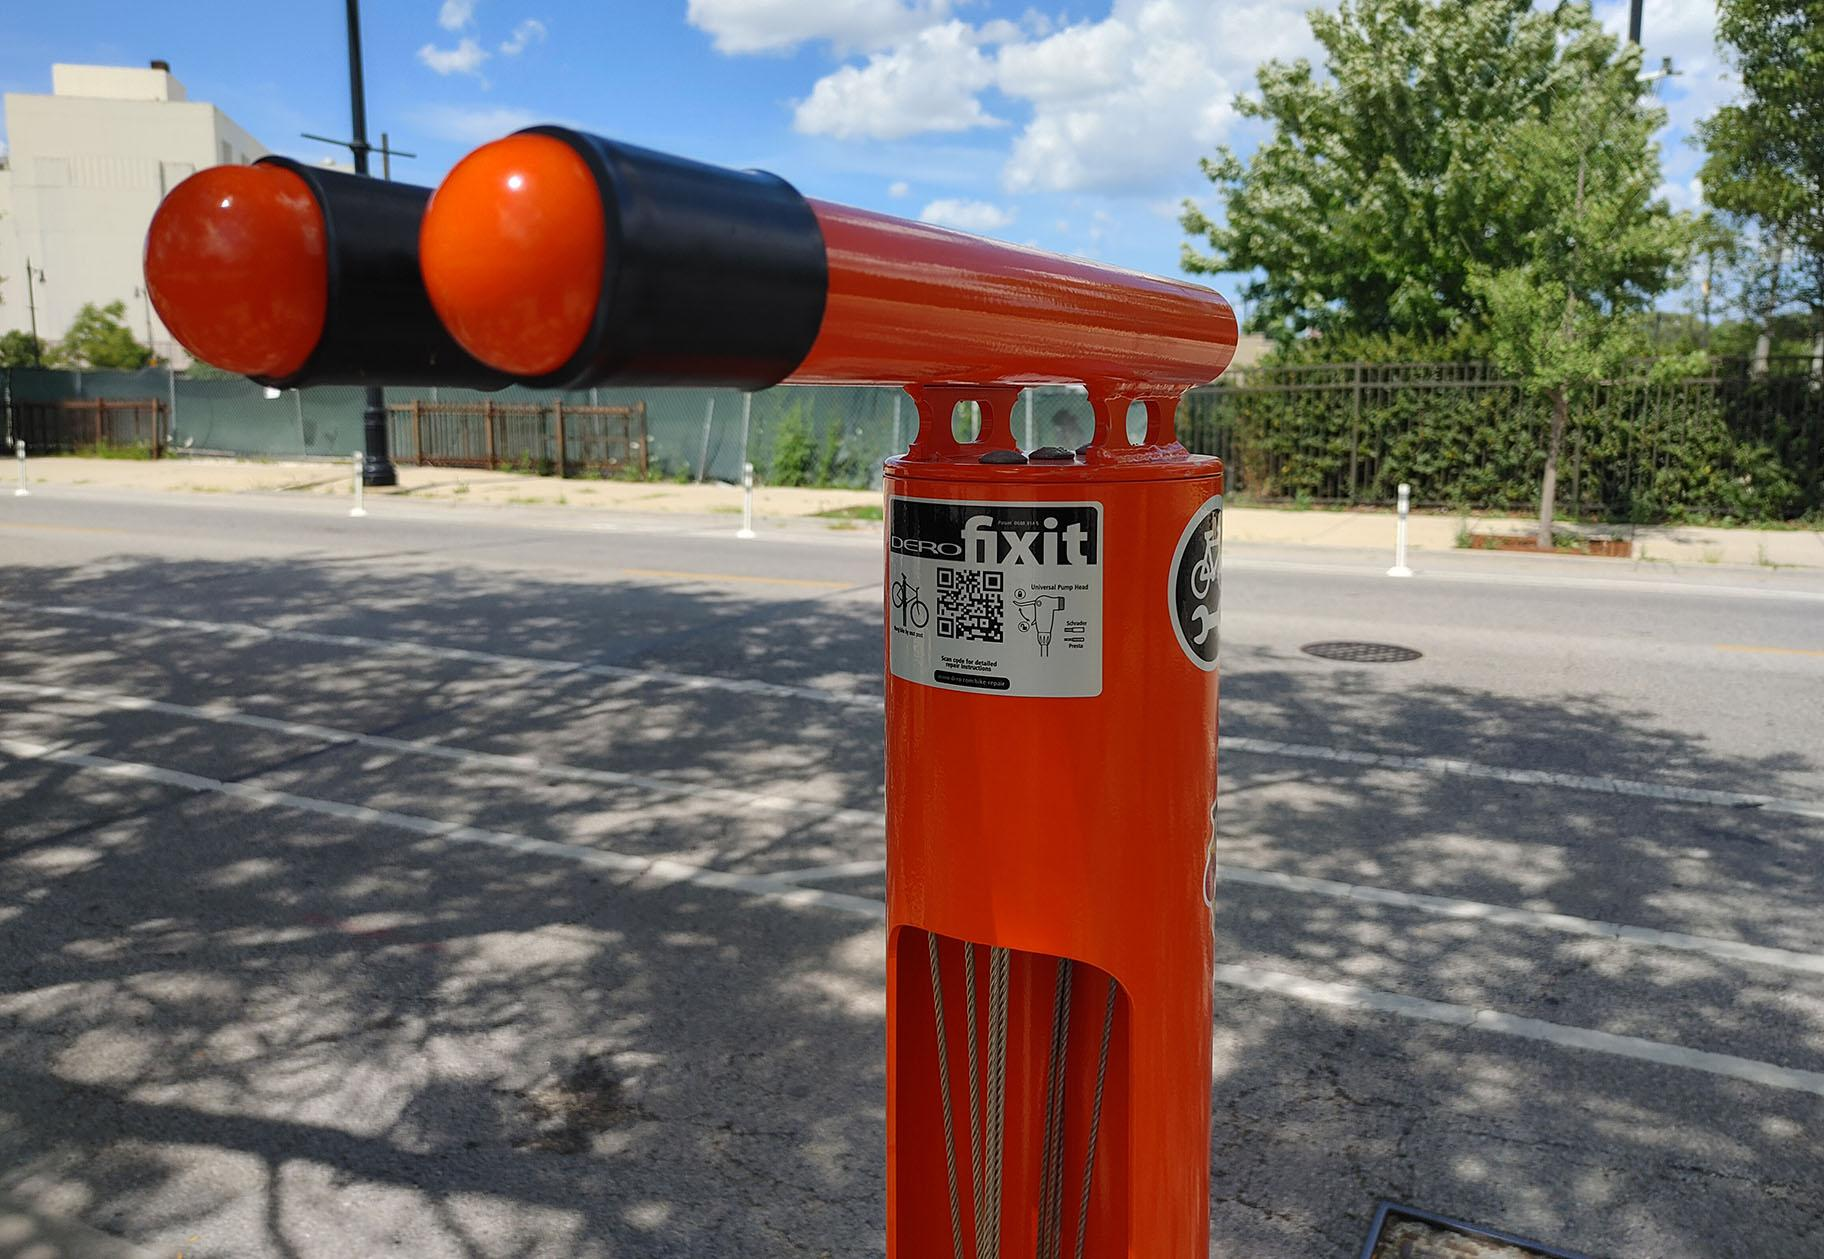 A Dero Fixit bike repair station near Milwaukee and Kilpatrick avenues in Portage Park. (Erica Gunderson / WTTW News)